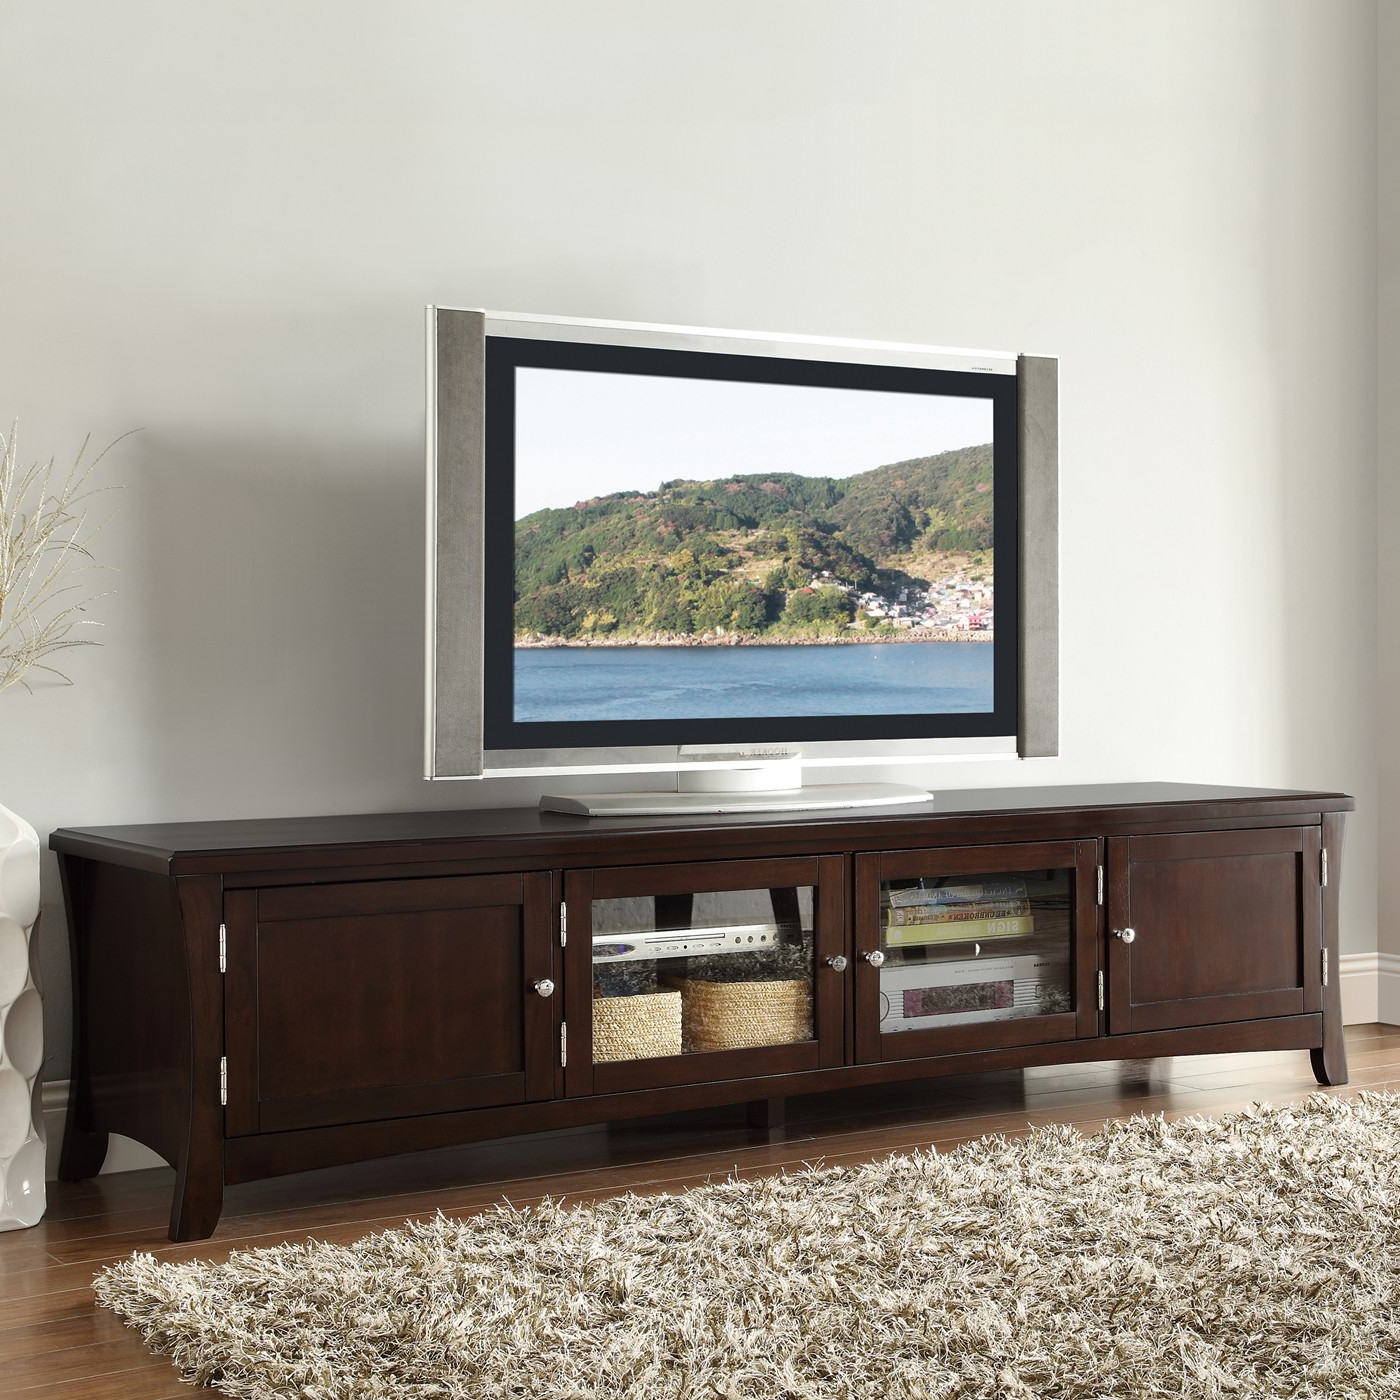 Beautiful Ducar 84 Inch Tv Stand Living Spaces 84 Tv Stand For Most Recent Ducar 84 Inch Tv Stands (View 16 of 20)